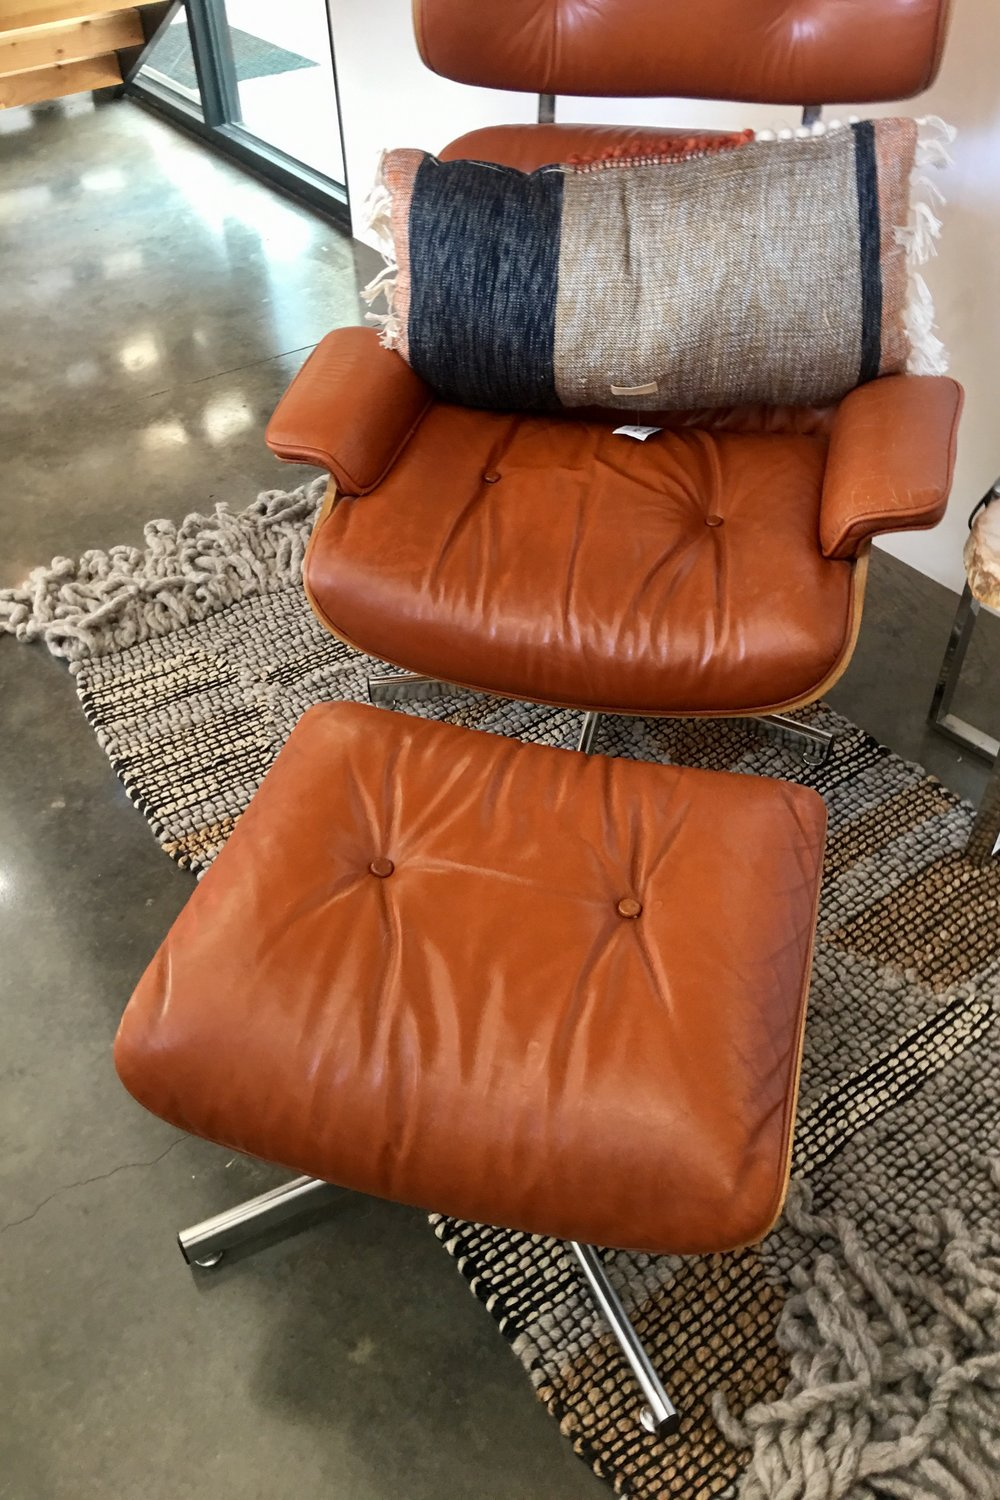 I'm always drawn to modern clean lines and this chair was screaming my name!  Now, granted, it's not one I could totally crash in, but it would do in a nice nook in a bedroom or corner by the fireplace.